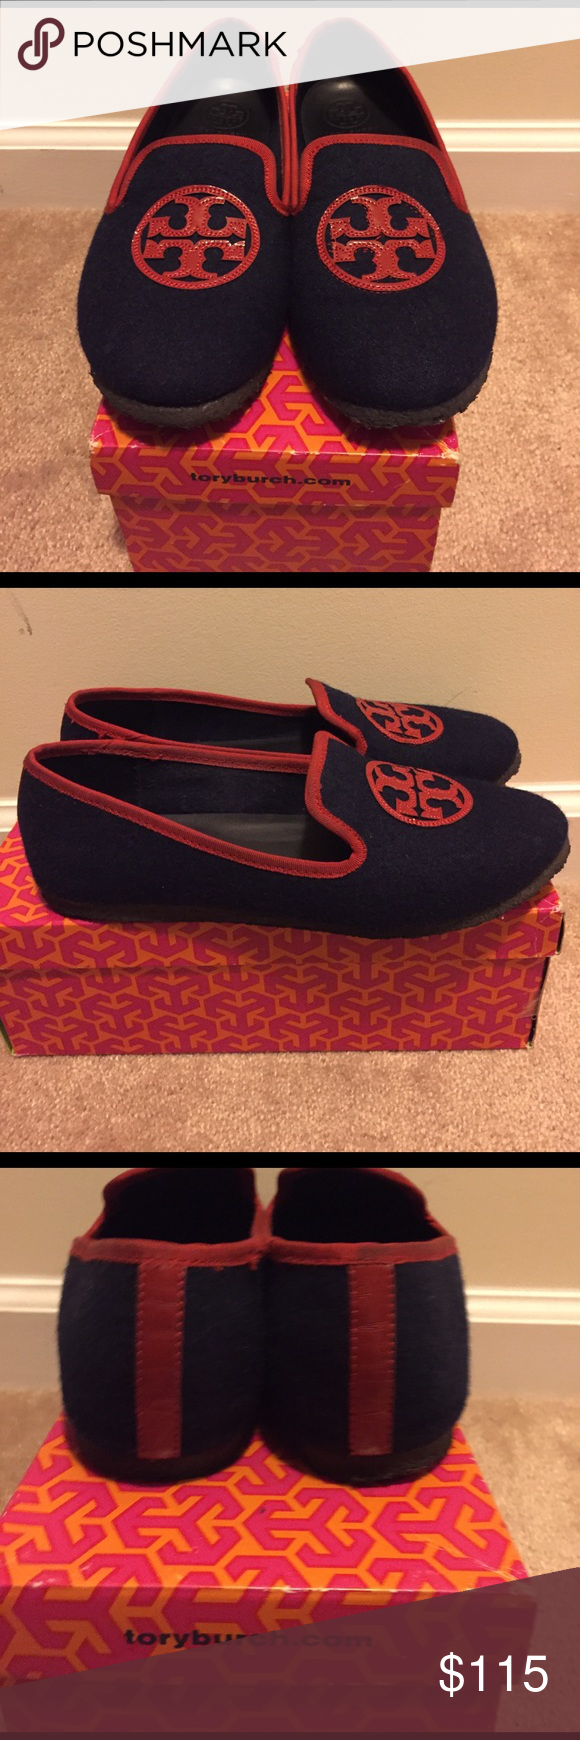 Authentic Tory Burch flats! Navy blue with red TB signs. Used but in good condition! Tory Burch Shoes Flats & Loafers